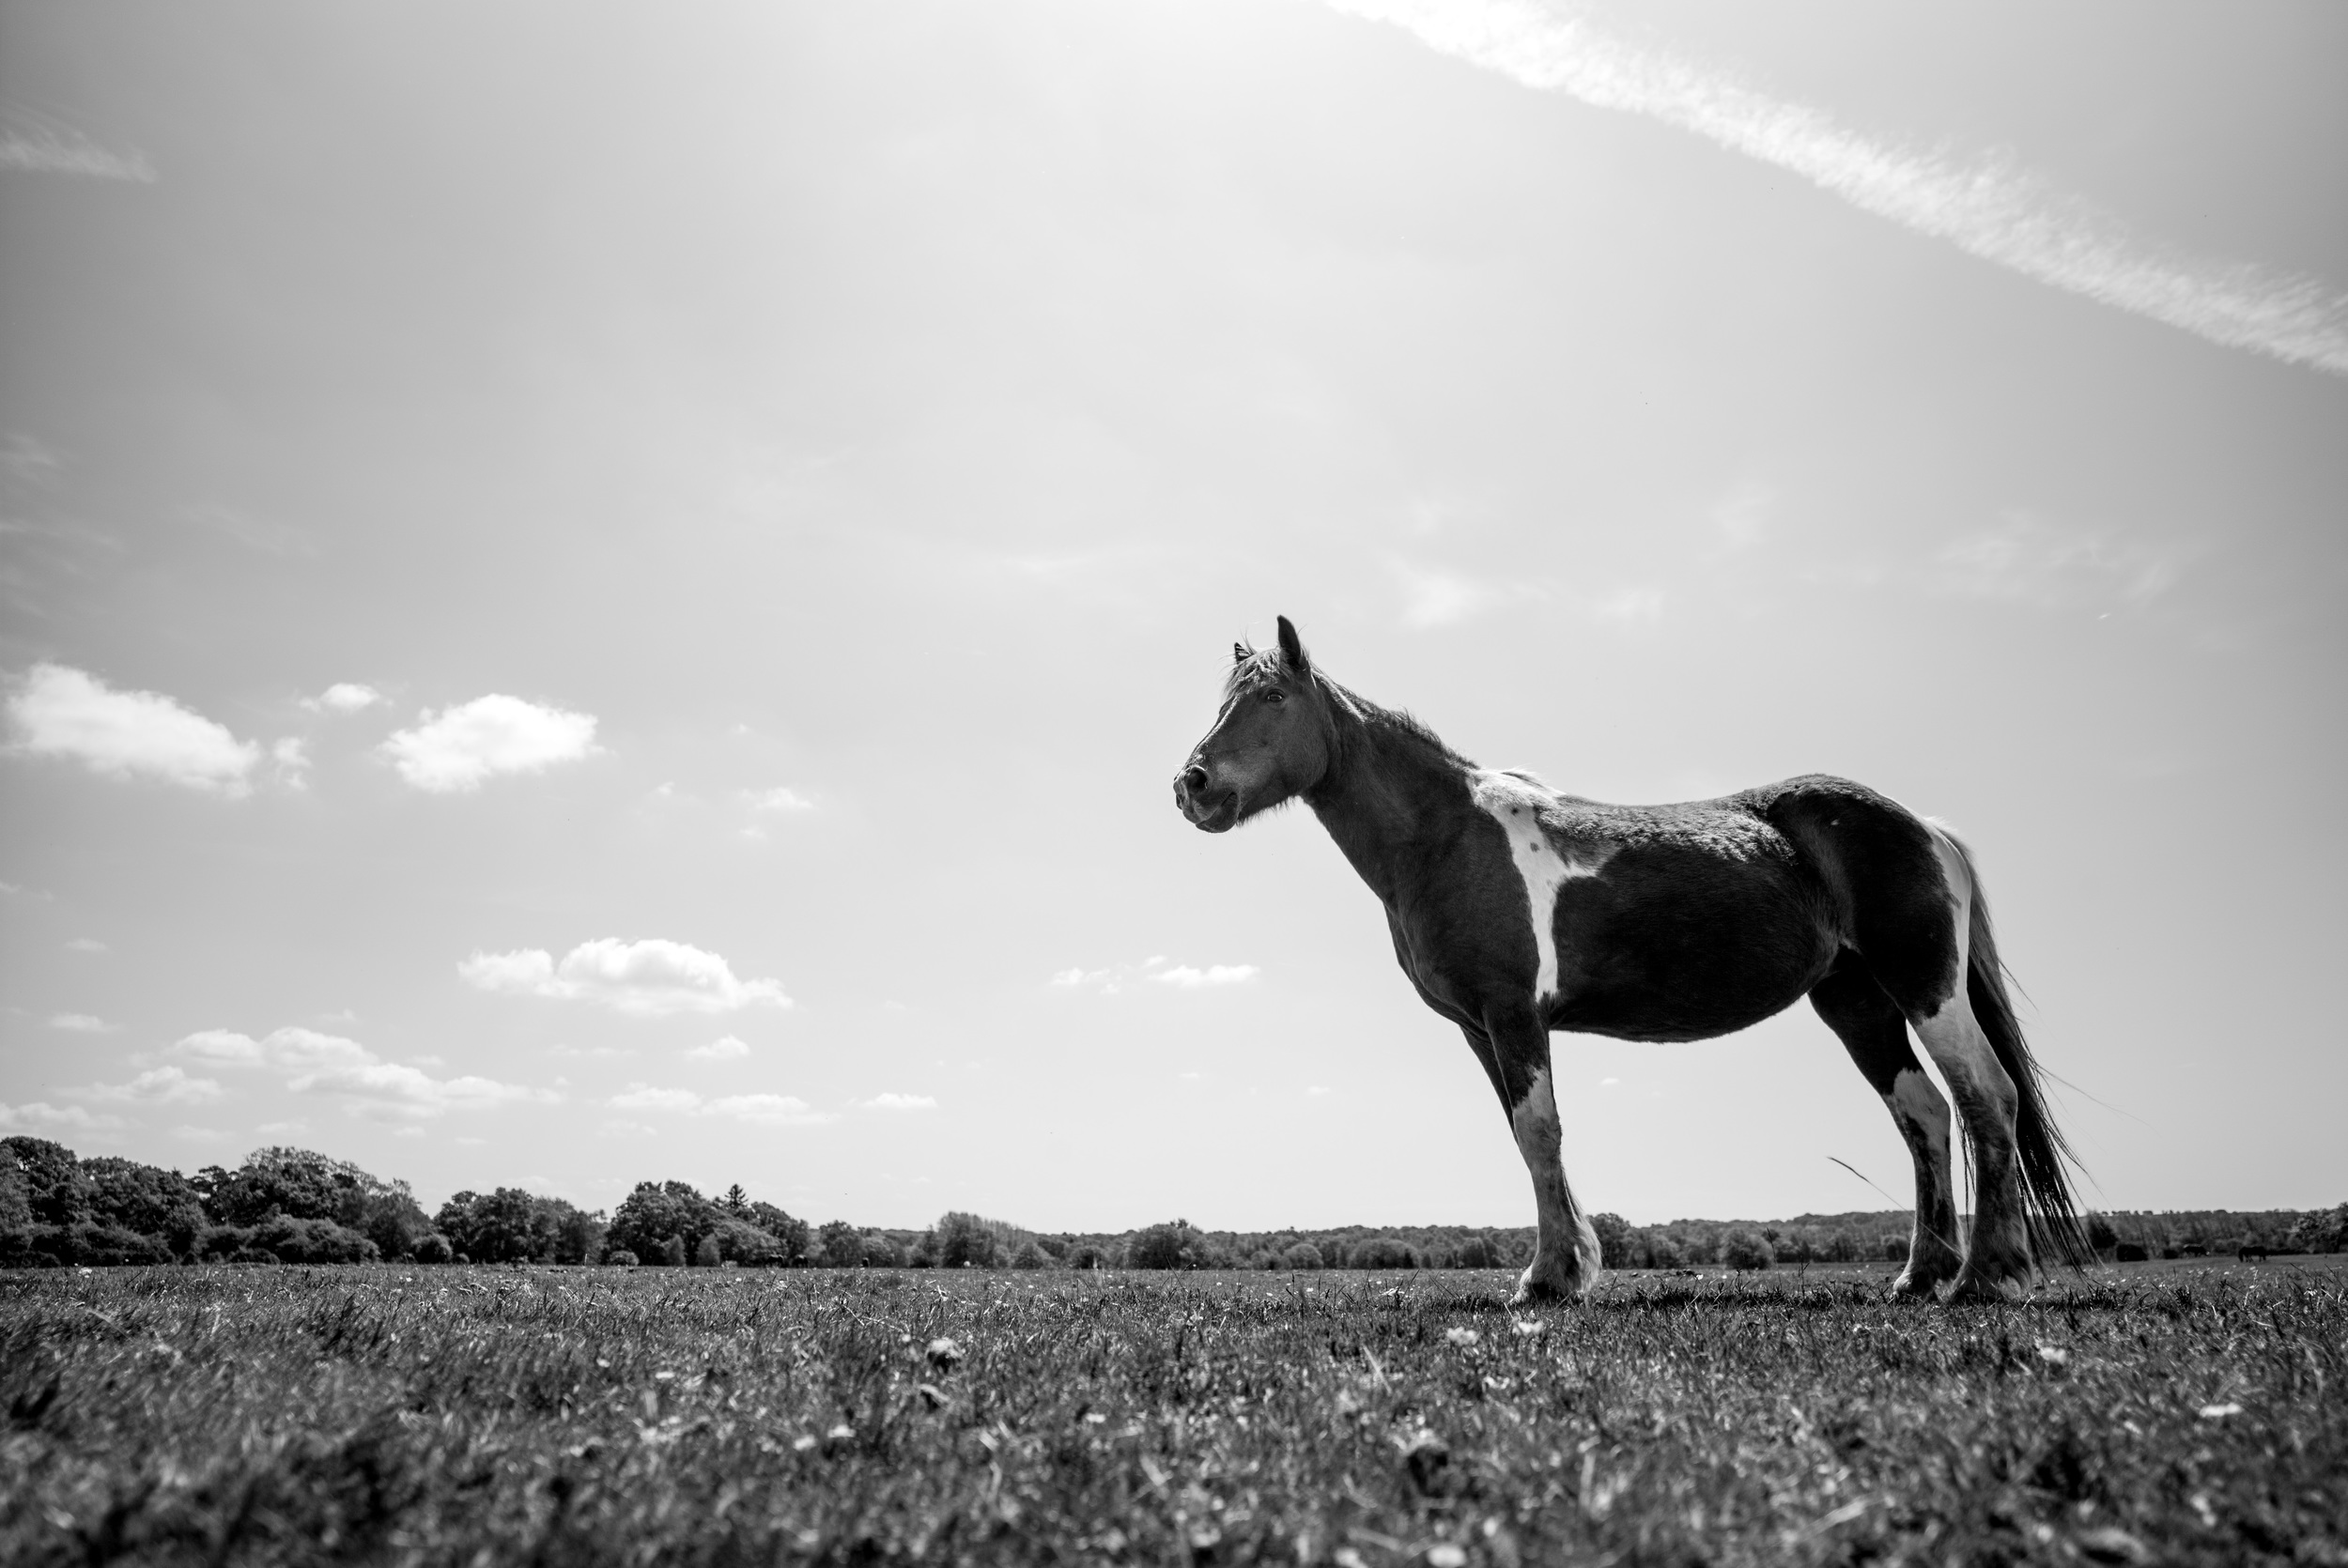 Epic pony shot. This one just stood and patiently posed for me for a bit.  (Leica Super-Elmar-M 21mm f/3.4 ASPH.)